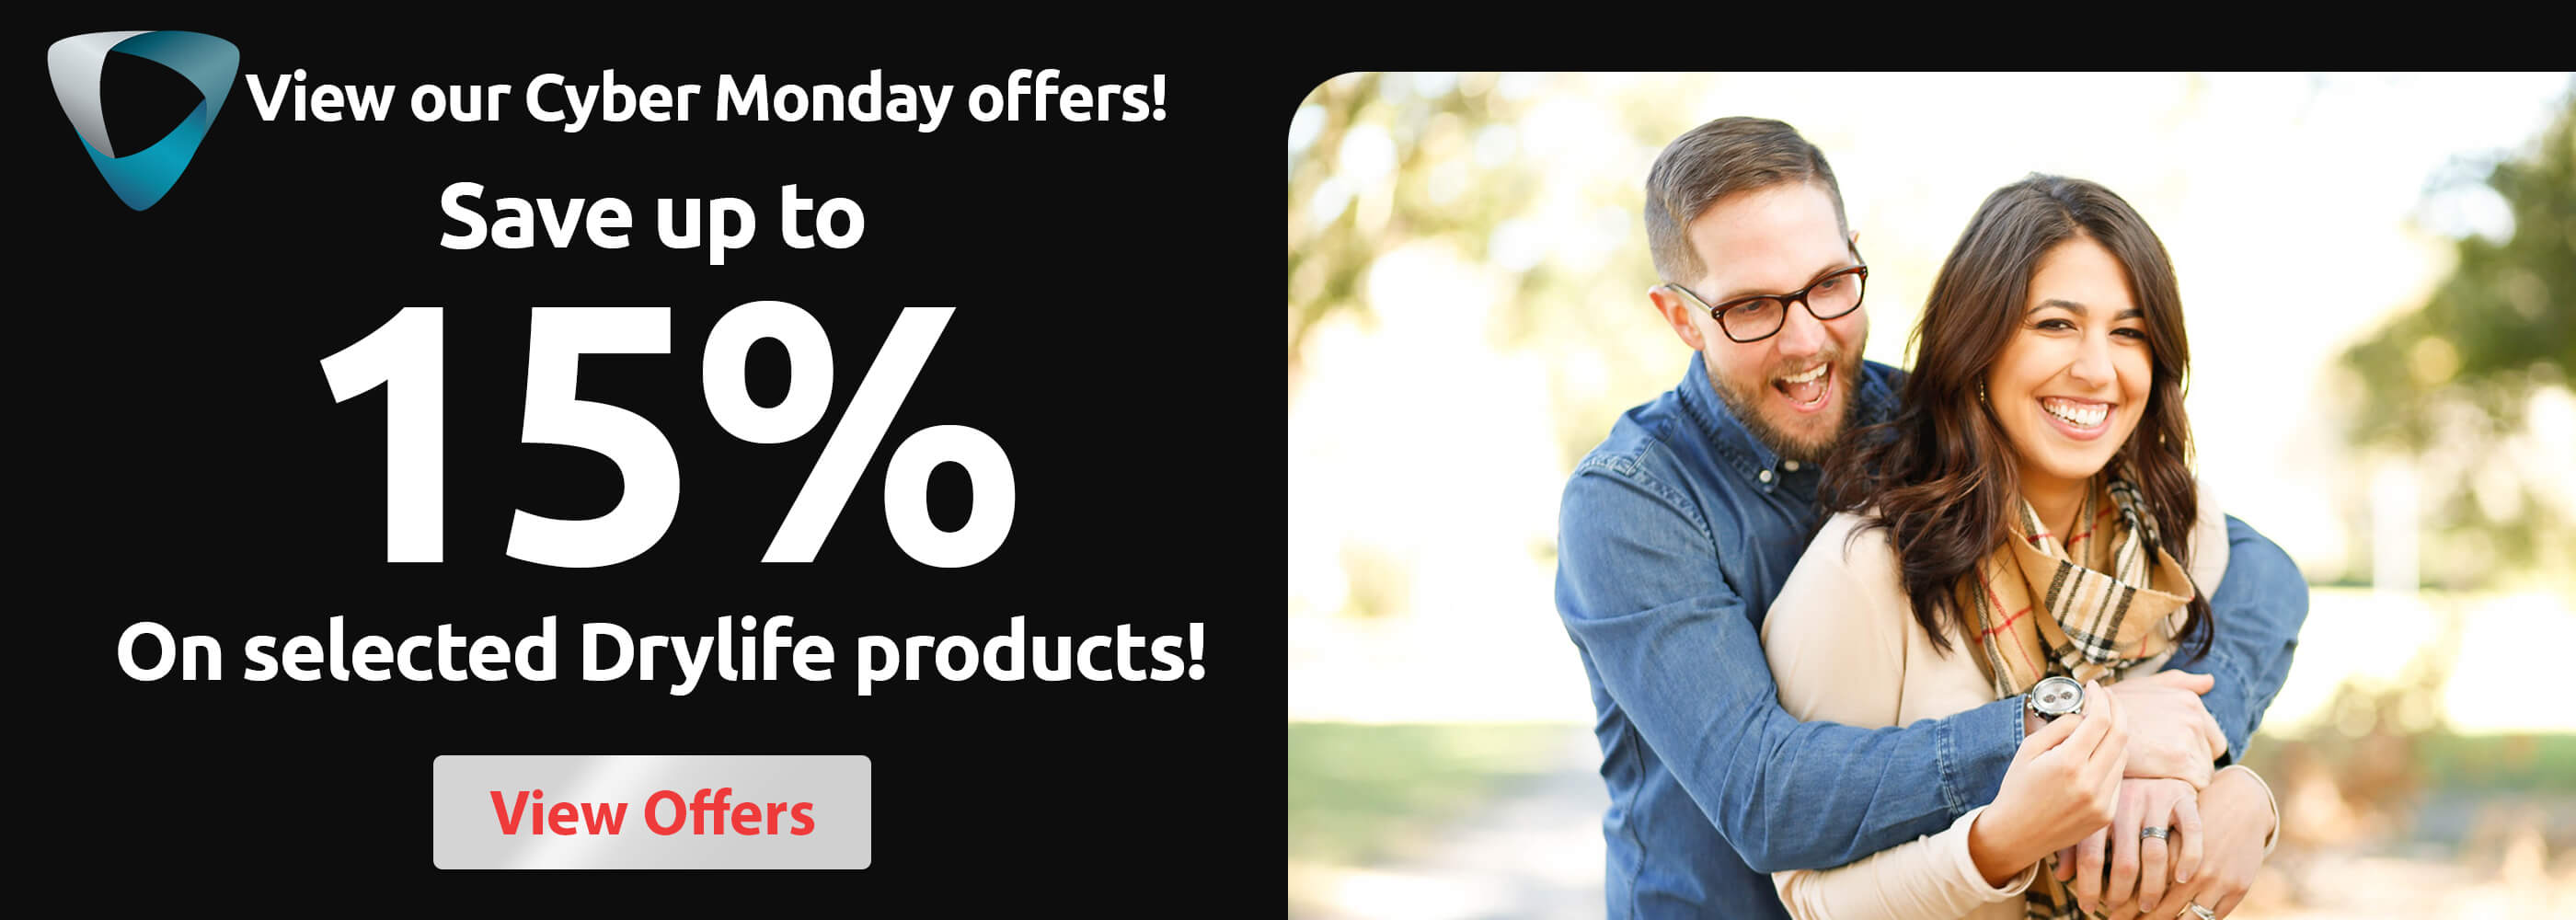 Cyber Monday - Up to 15% off Drylife!